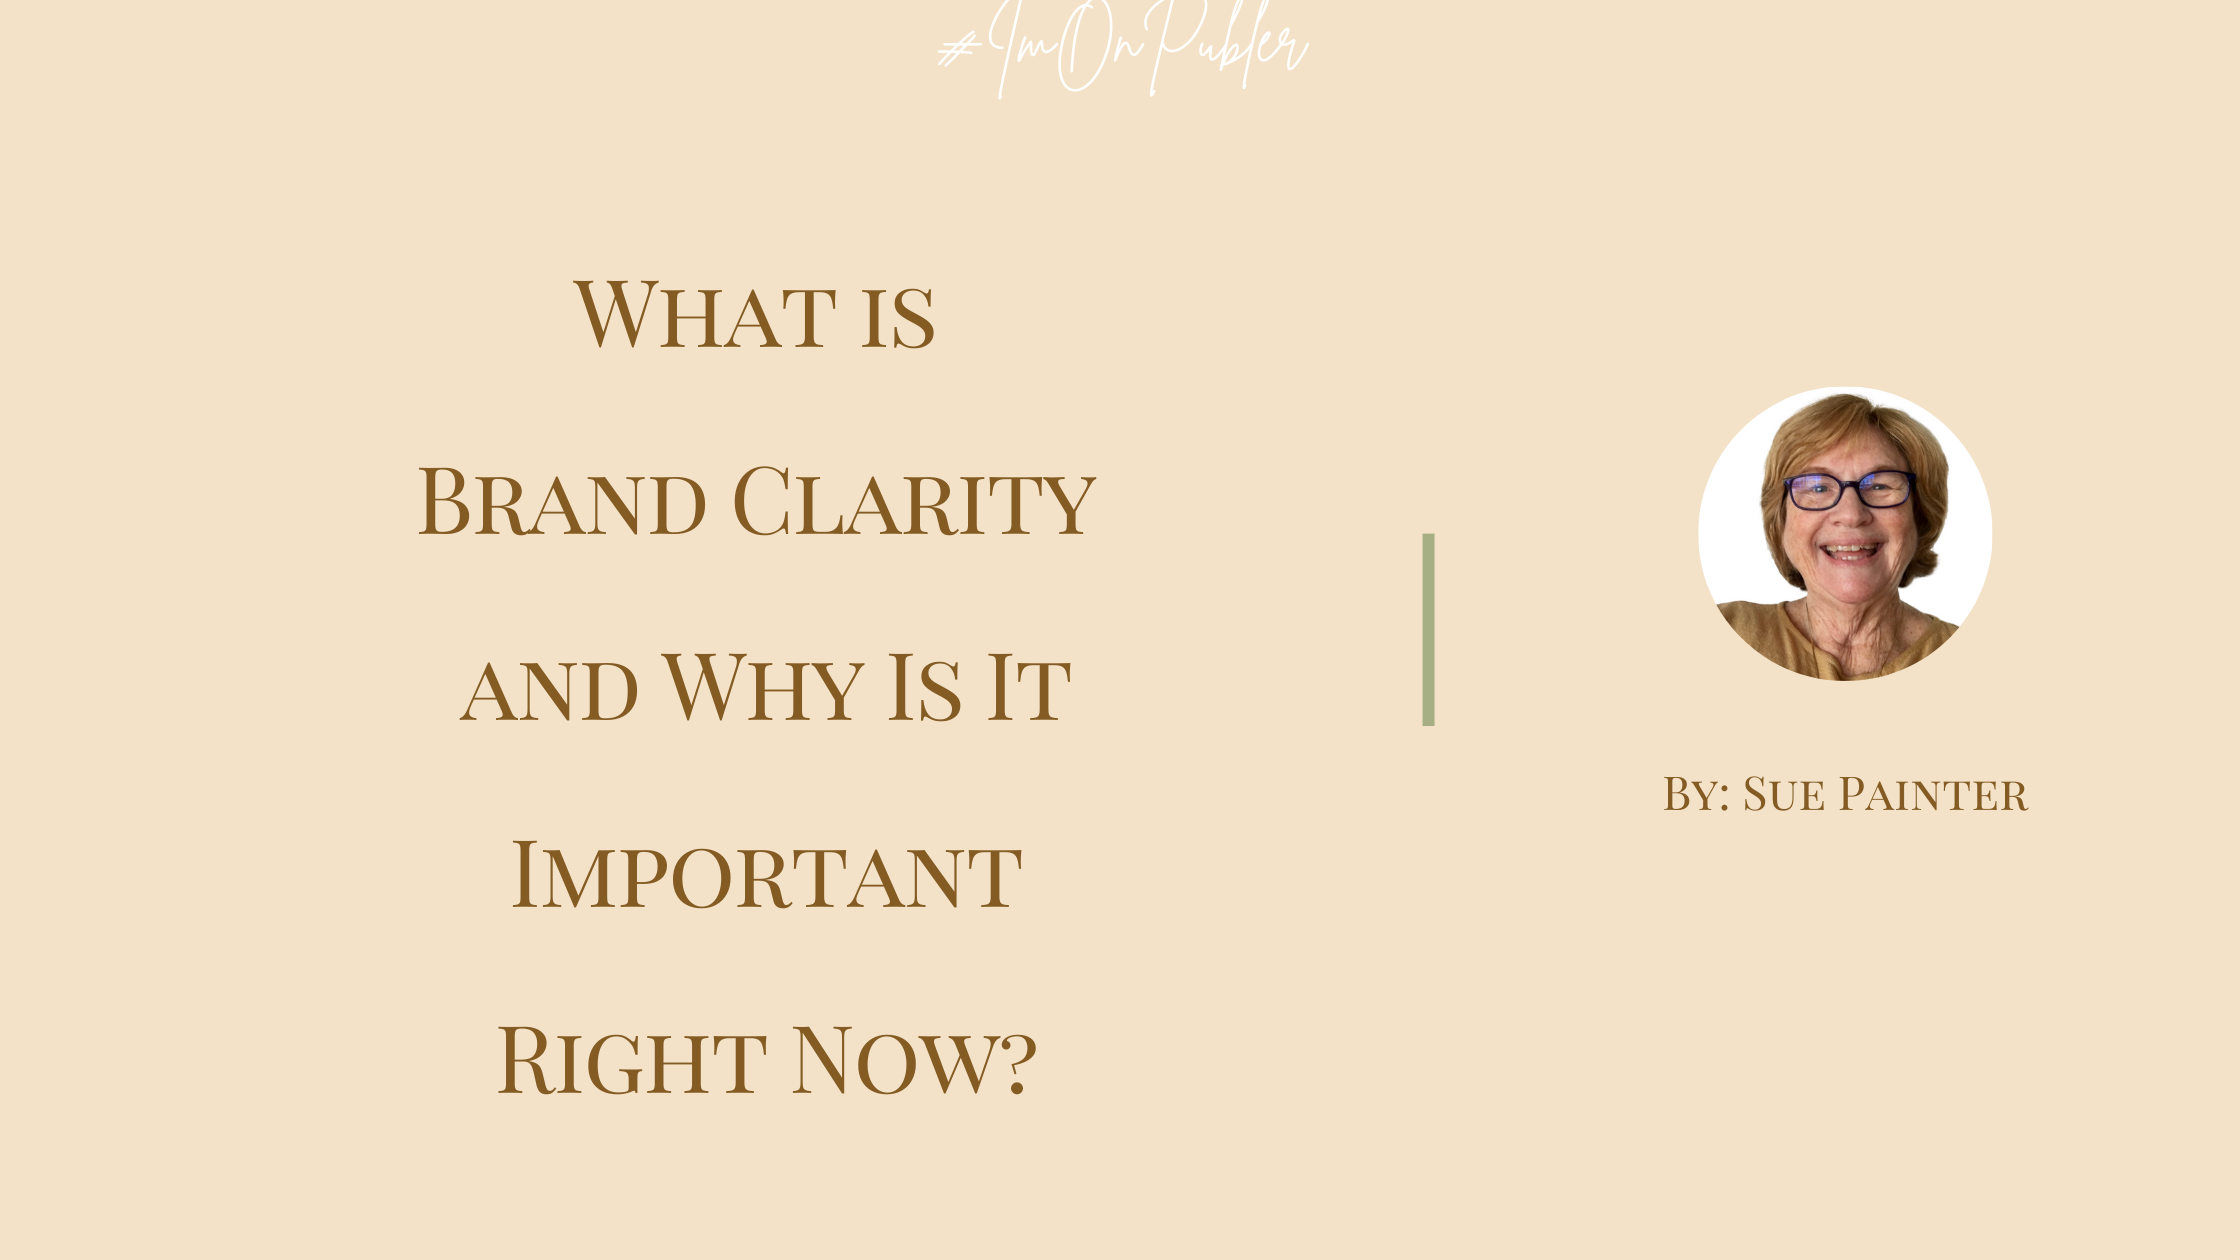 What is Brand Clarity and Why Is It Important Right Now? by Sue Painter